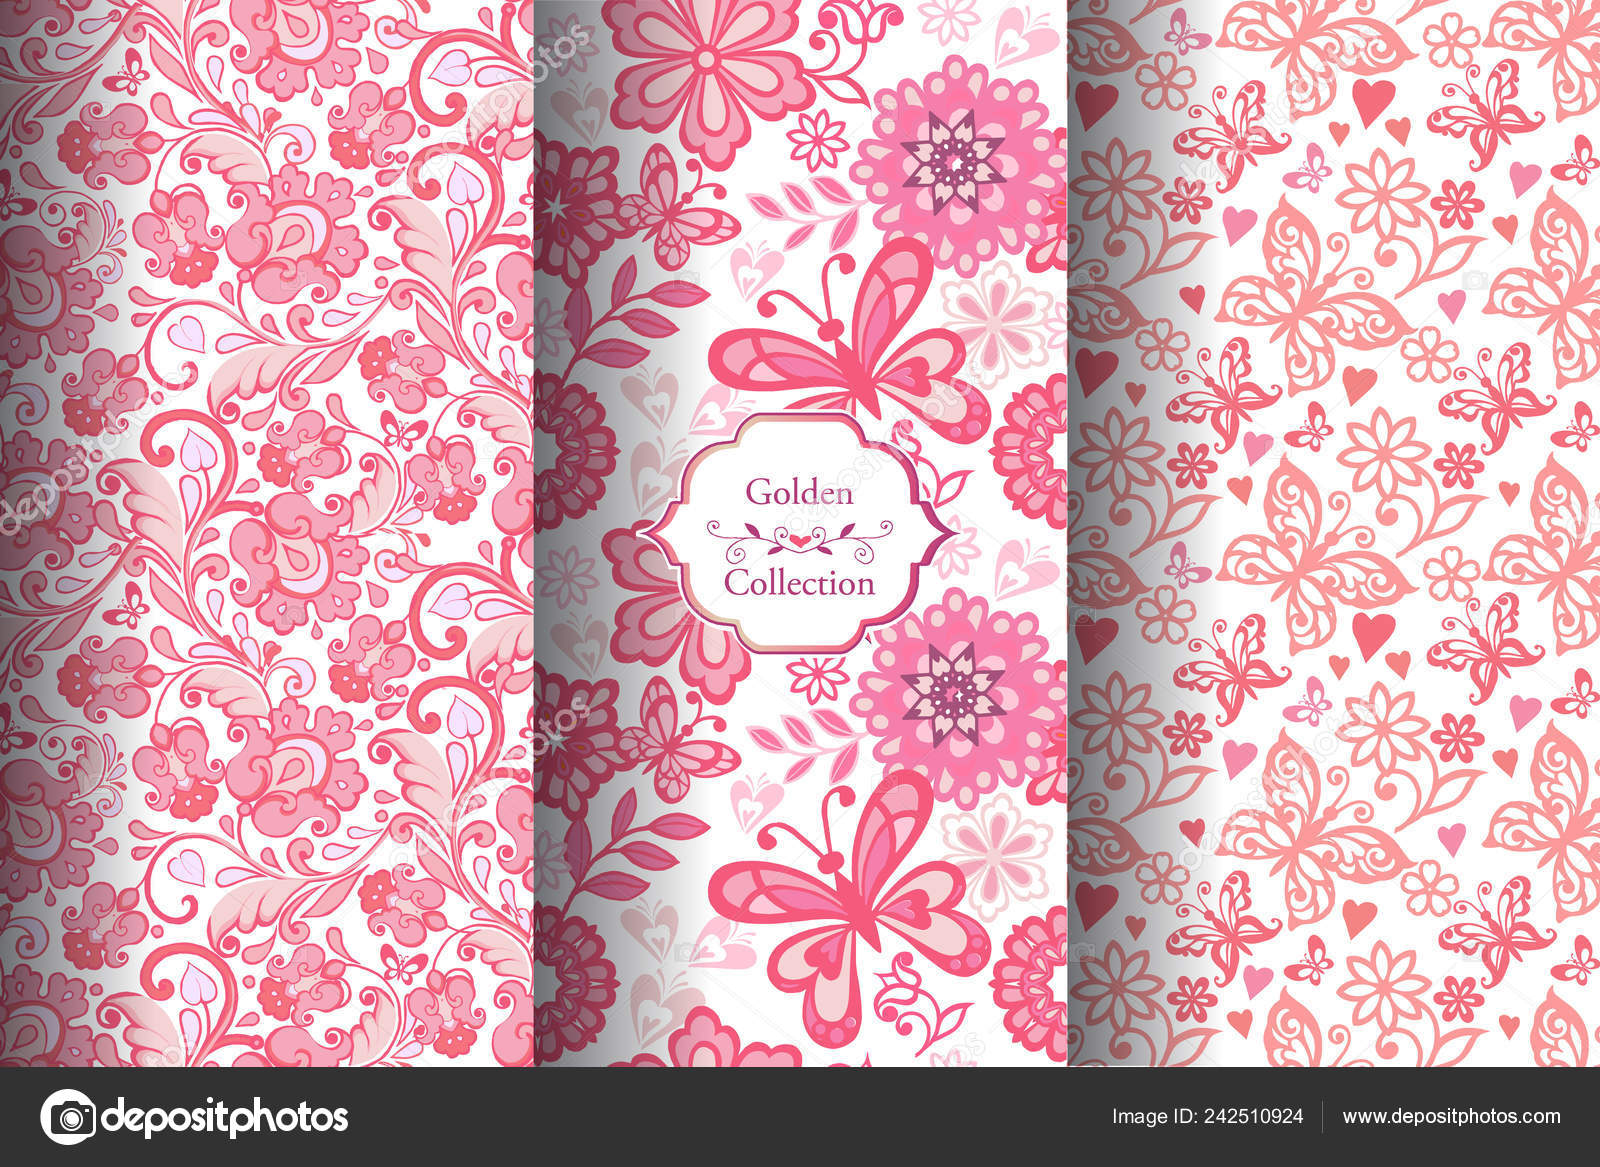 depositphotos 242510924 stock illustration pink set seamless floral pattern